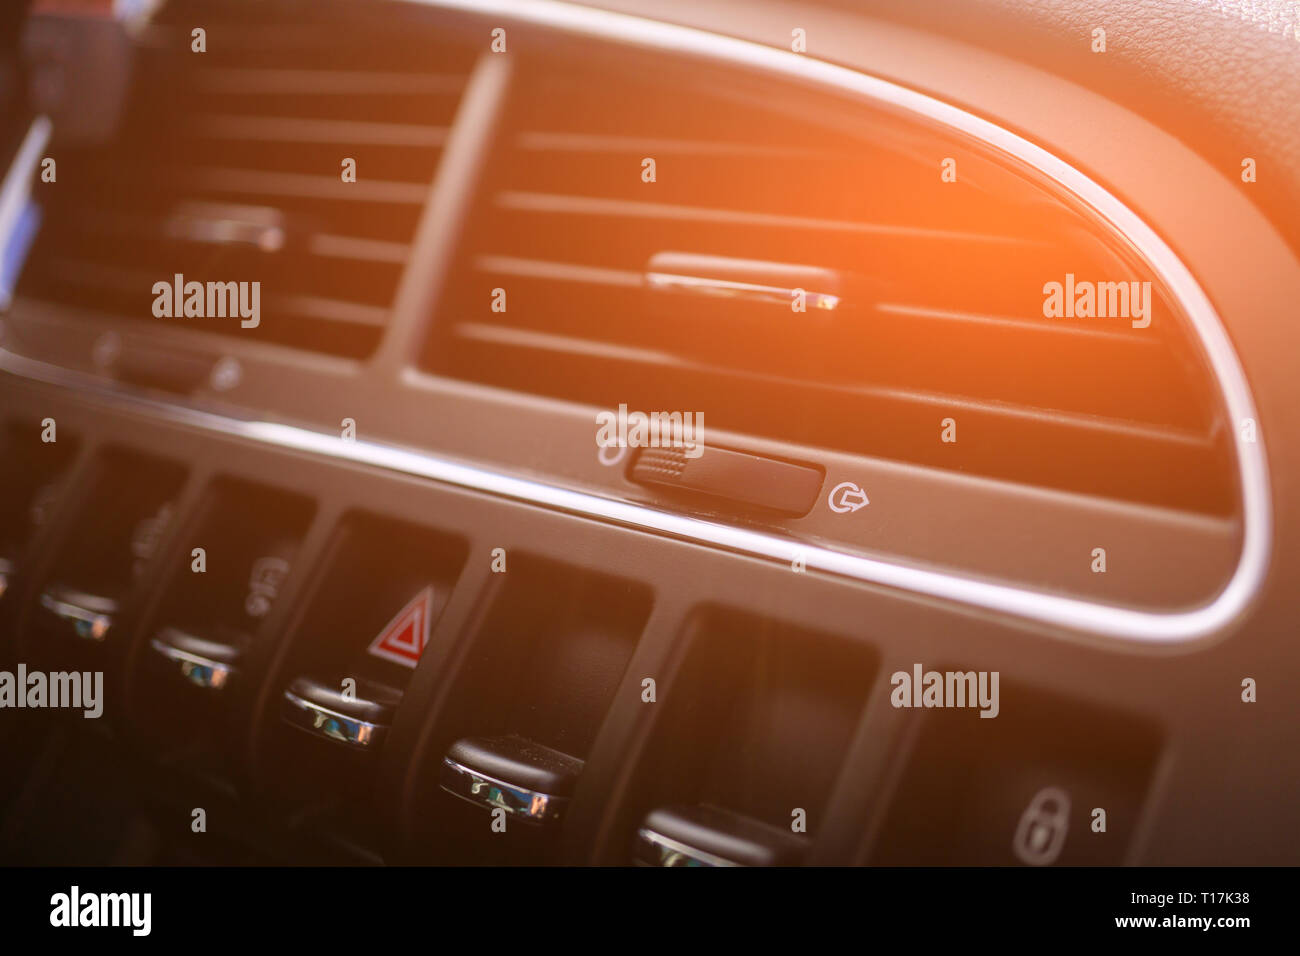 Car conditioner. The air flow inside the car. Detail interior. Air ducts, deflectors on the car panel. - Stock Image